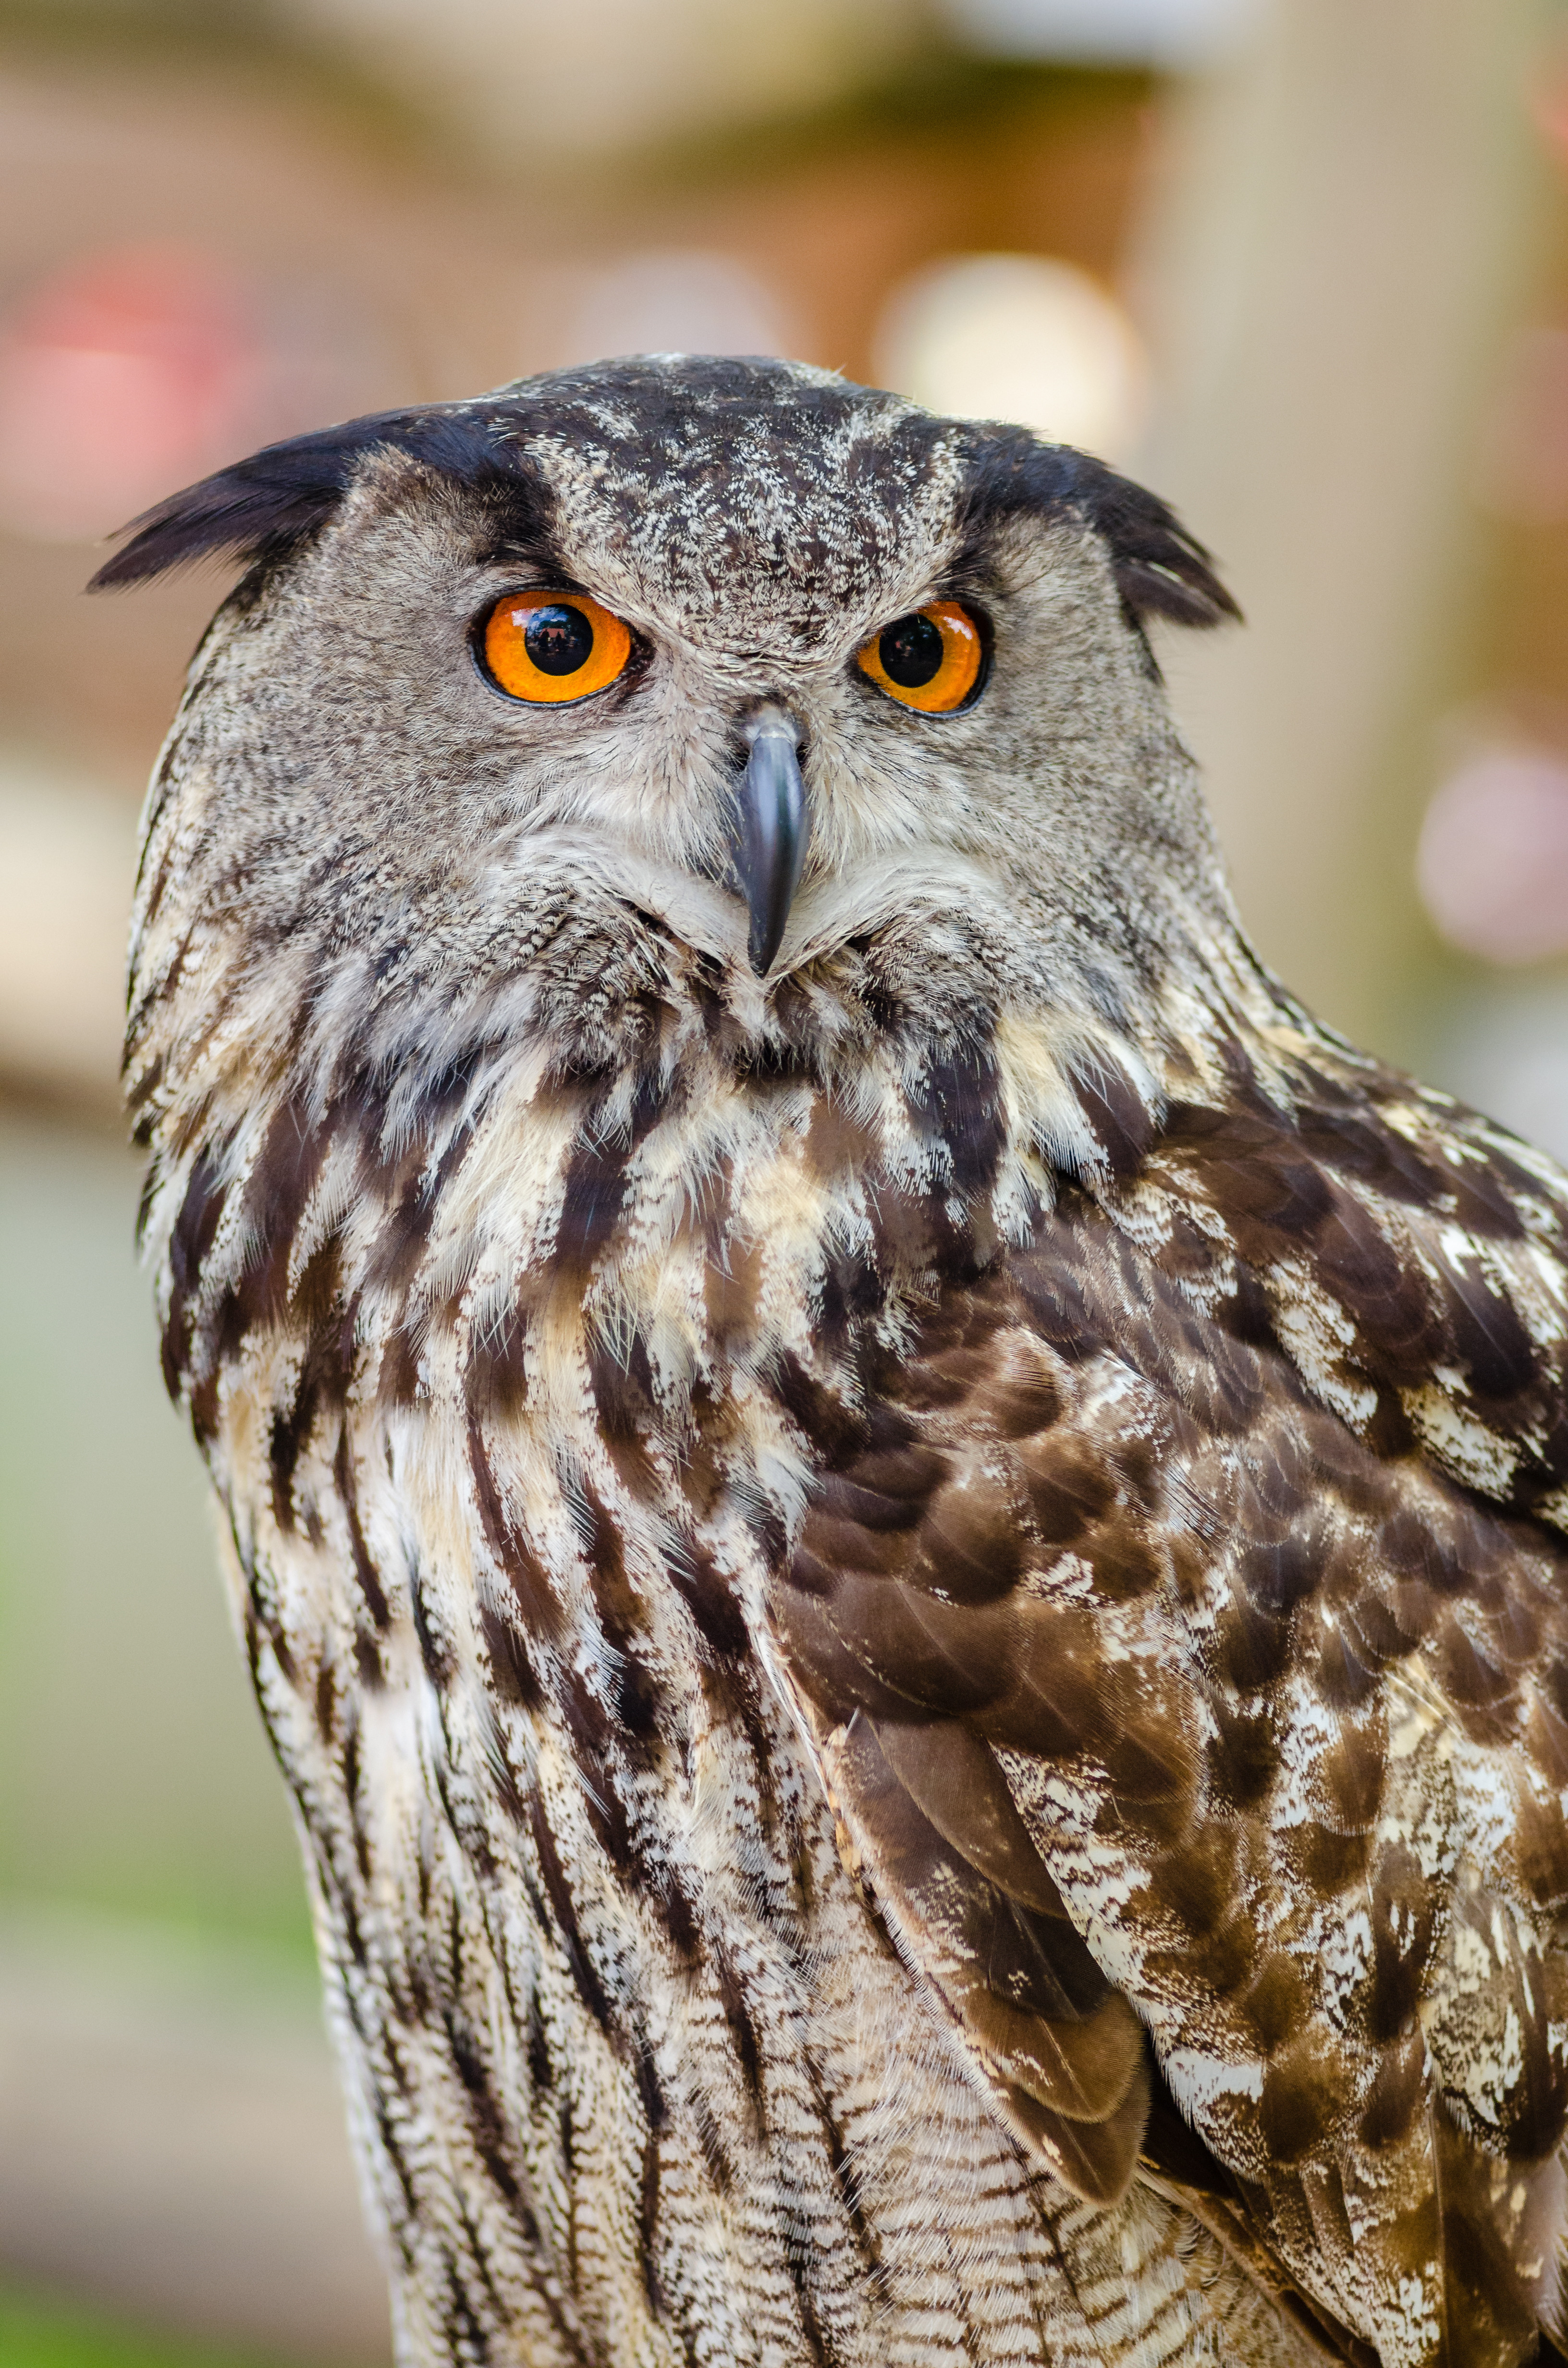 100340 download wallpaper Animals, Eurasian Eagle Owl, Eurasian Owl, Owl, Eagle Owl, Bird, Predator screensavers and pictures for free